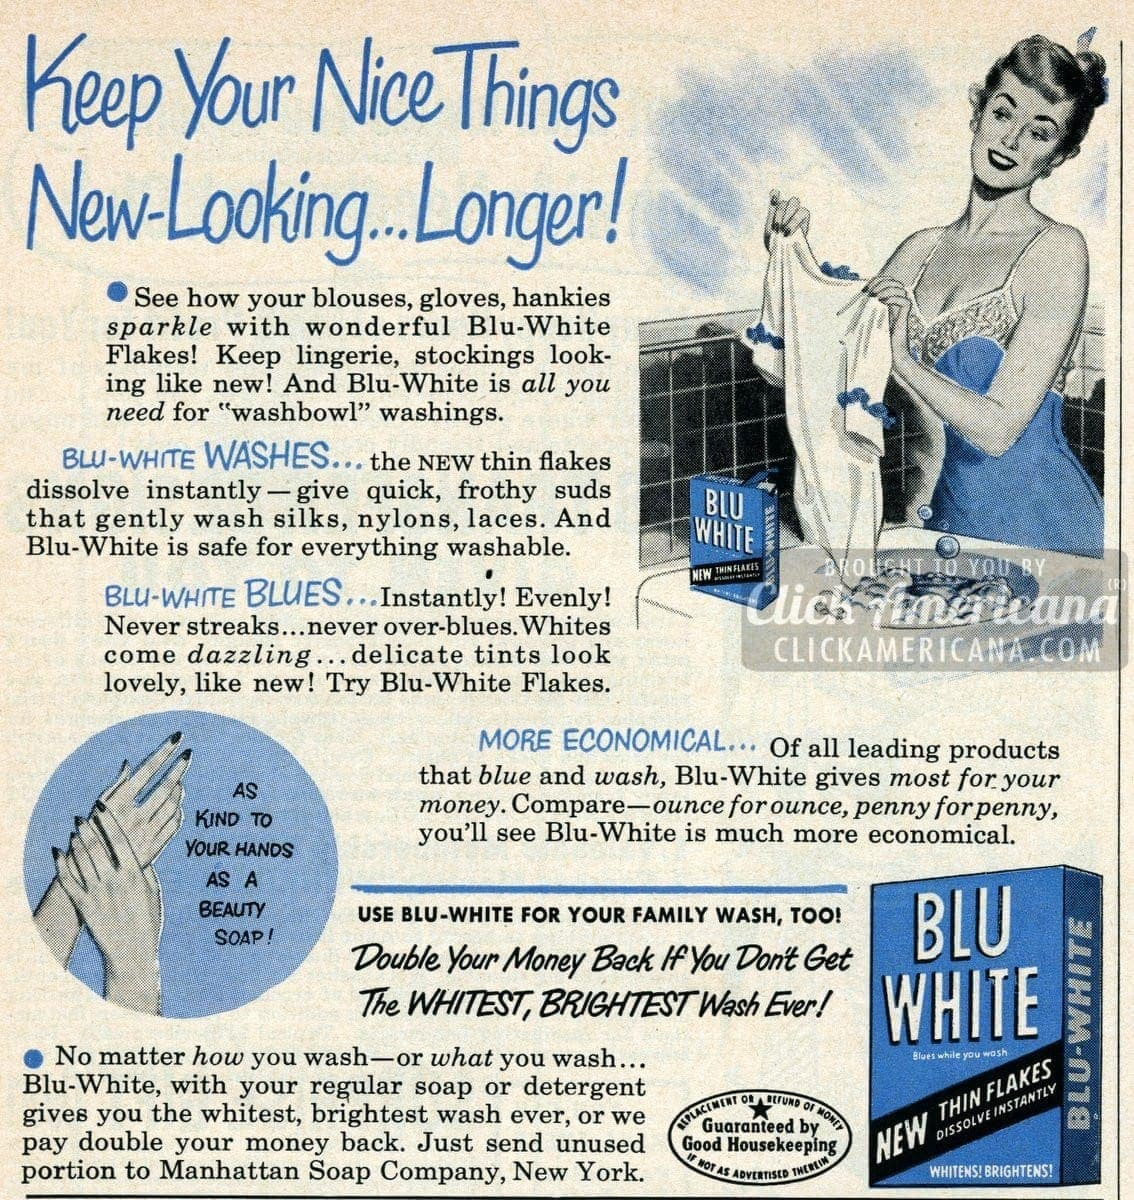 See Blouses Gloves Hankies Sparkle With Blu White 1950 Click Americana